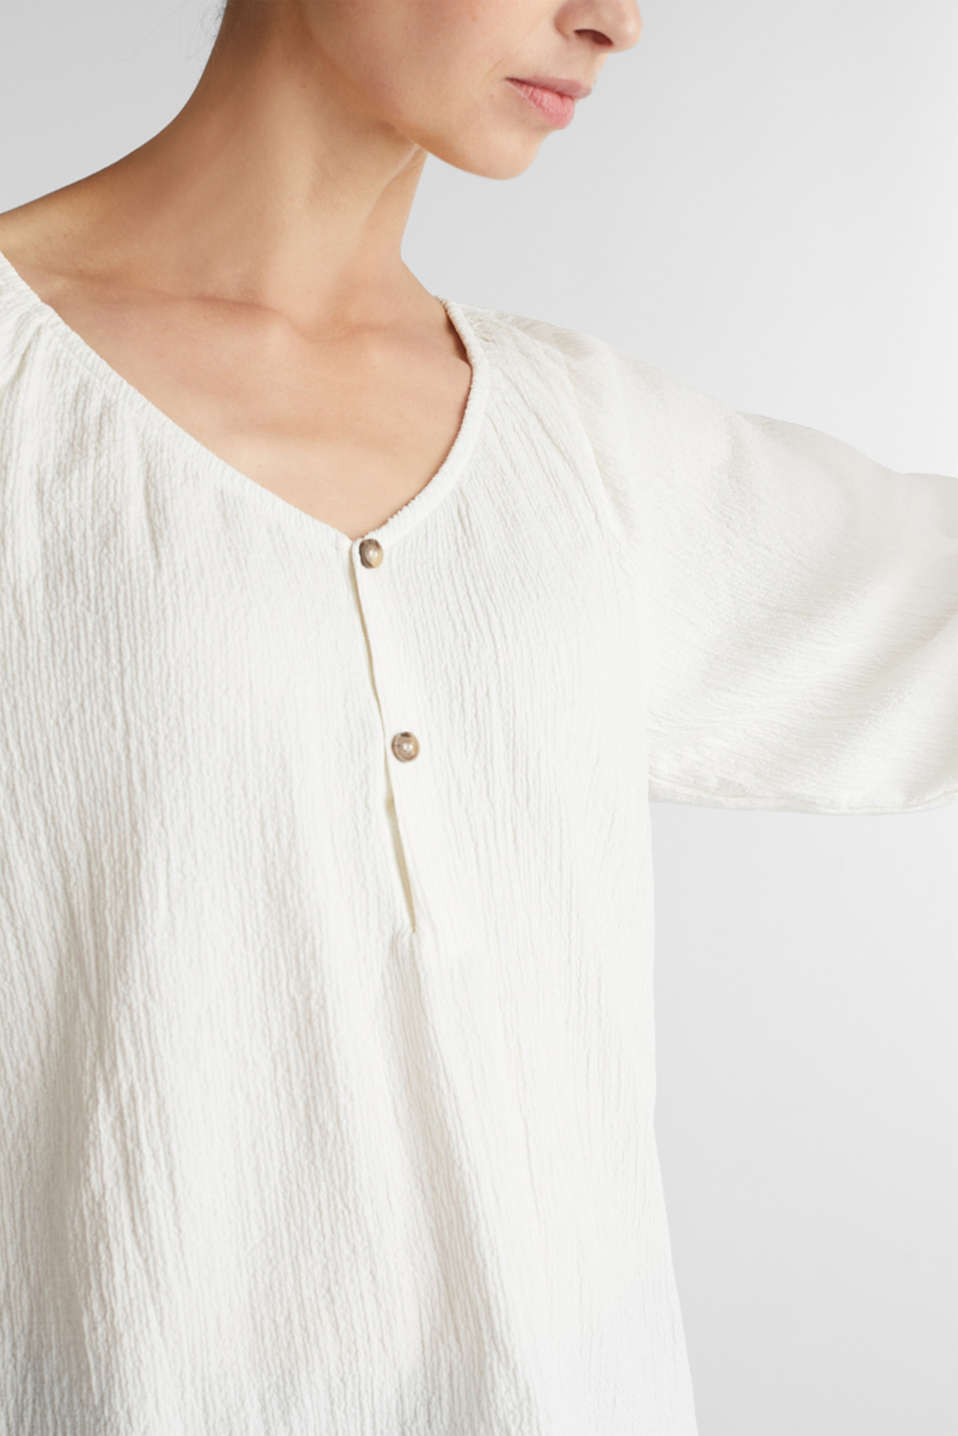 Textured blouse top, recycled, OFF WHITE, detail image number 2